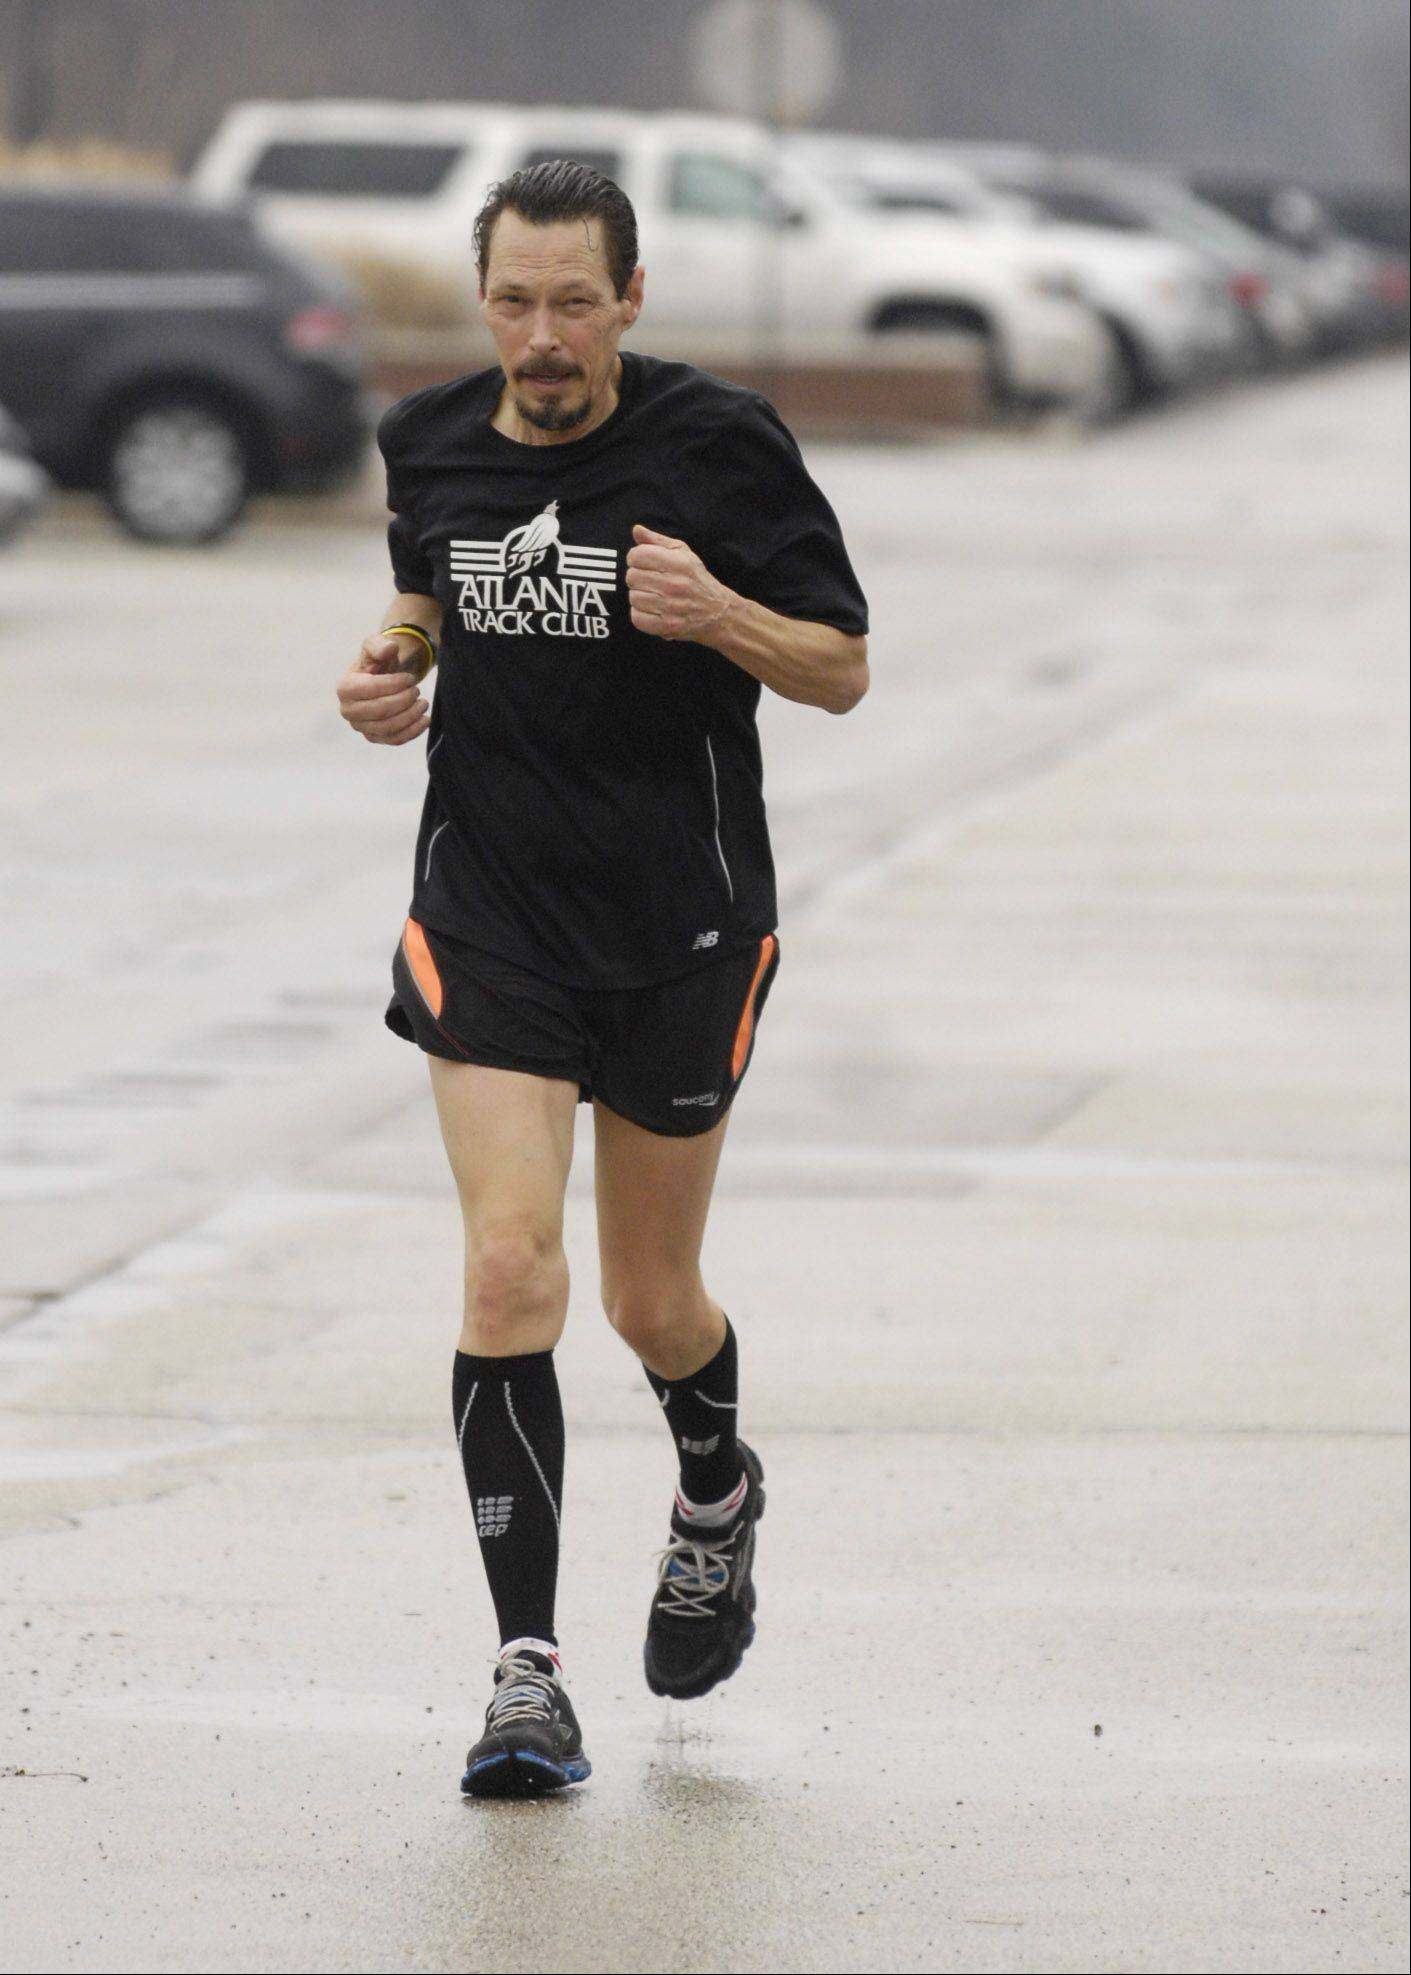 With the temperature of 59 degrees at the time, Drew Pearce of Aurora who was running with the Glen Ellyn Runners Club, was able to run in just a pair of shorts and tee shirt, Tuesday